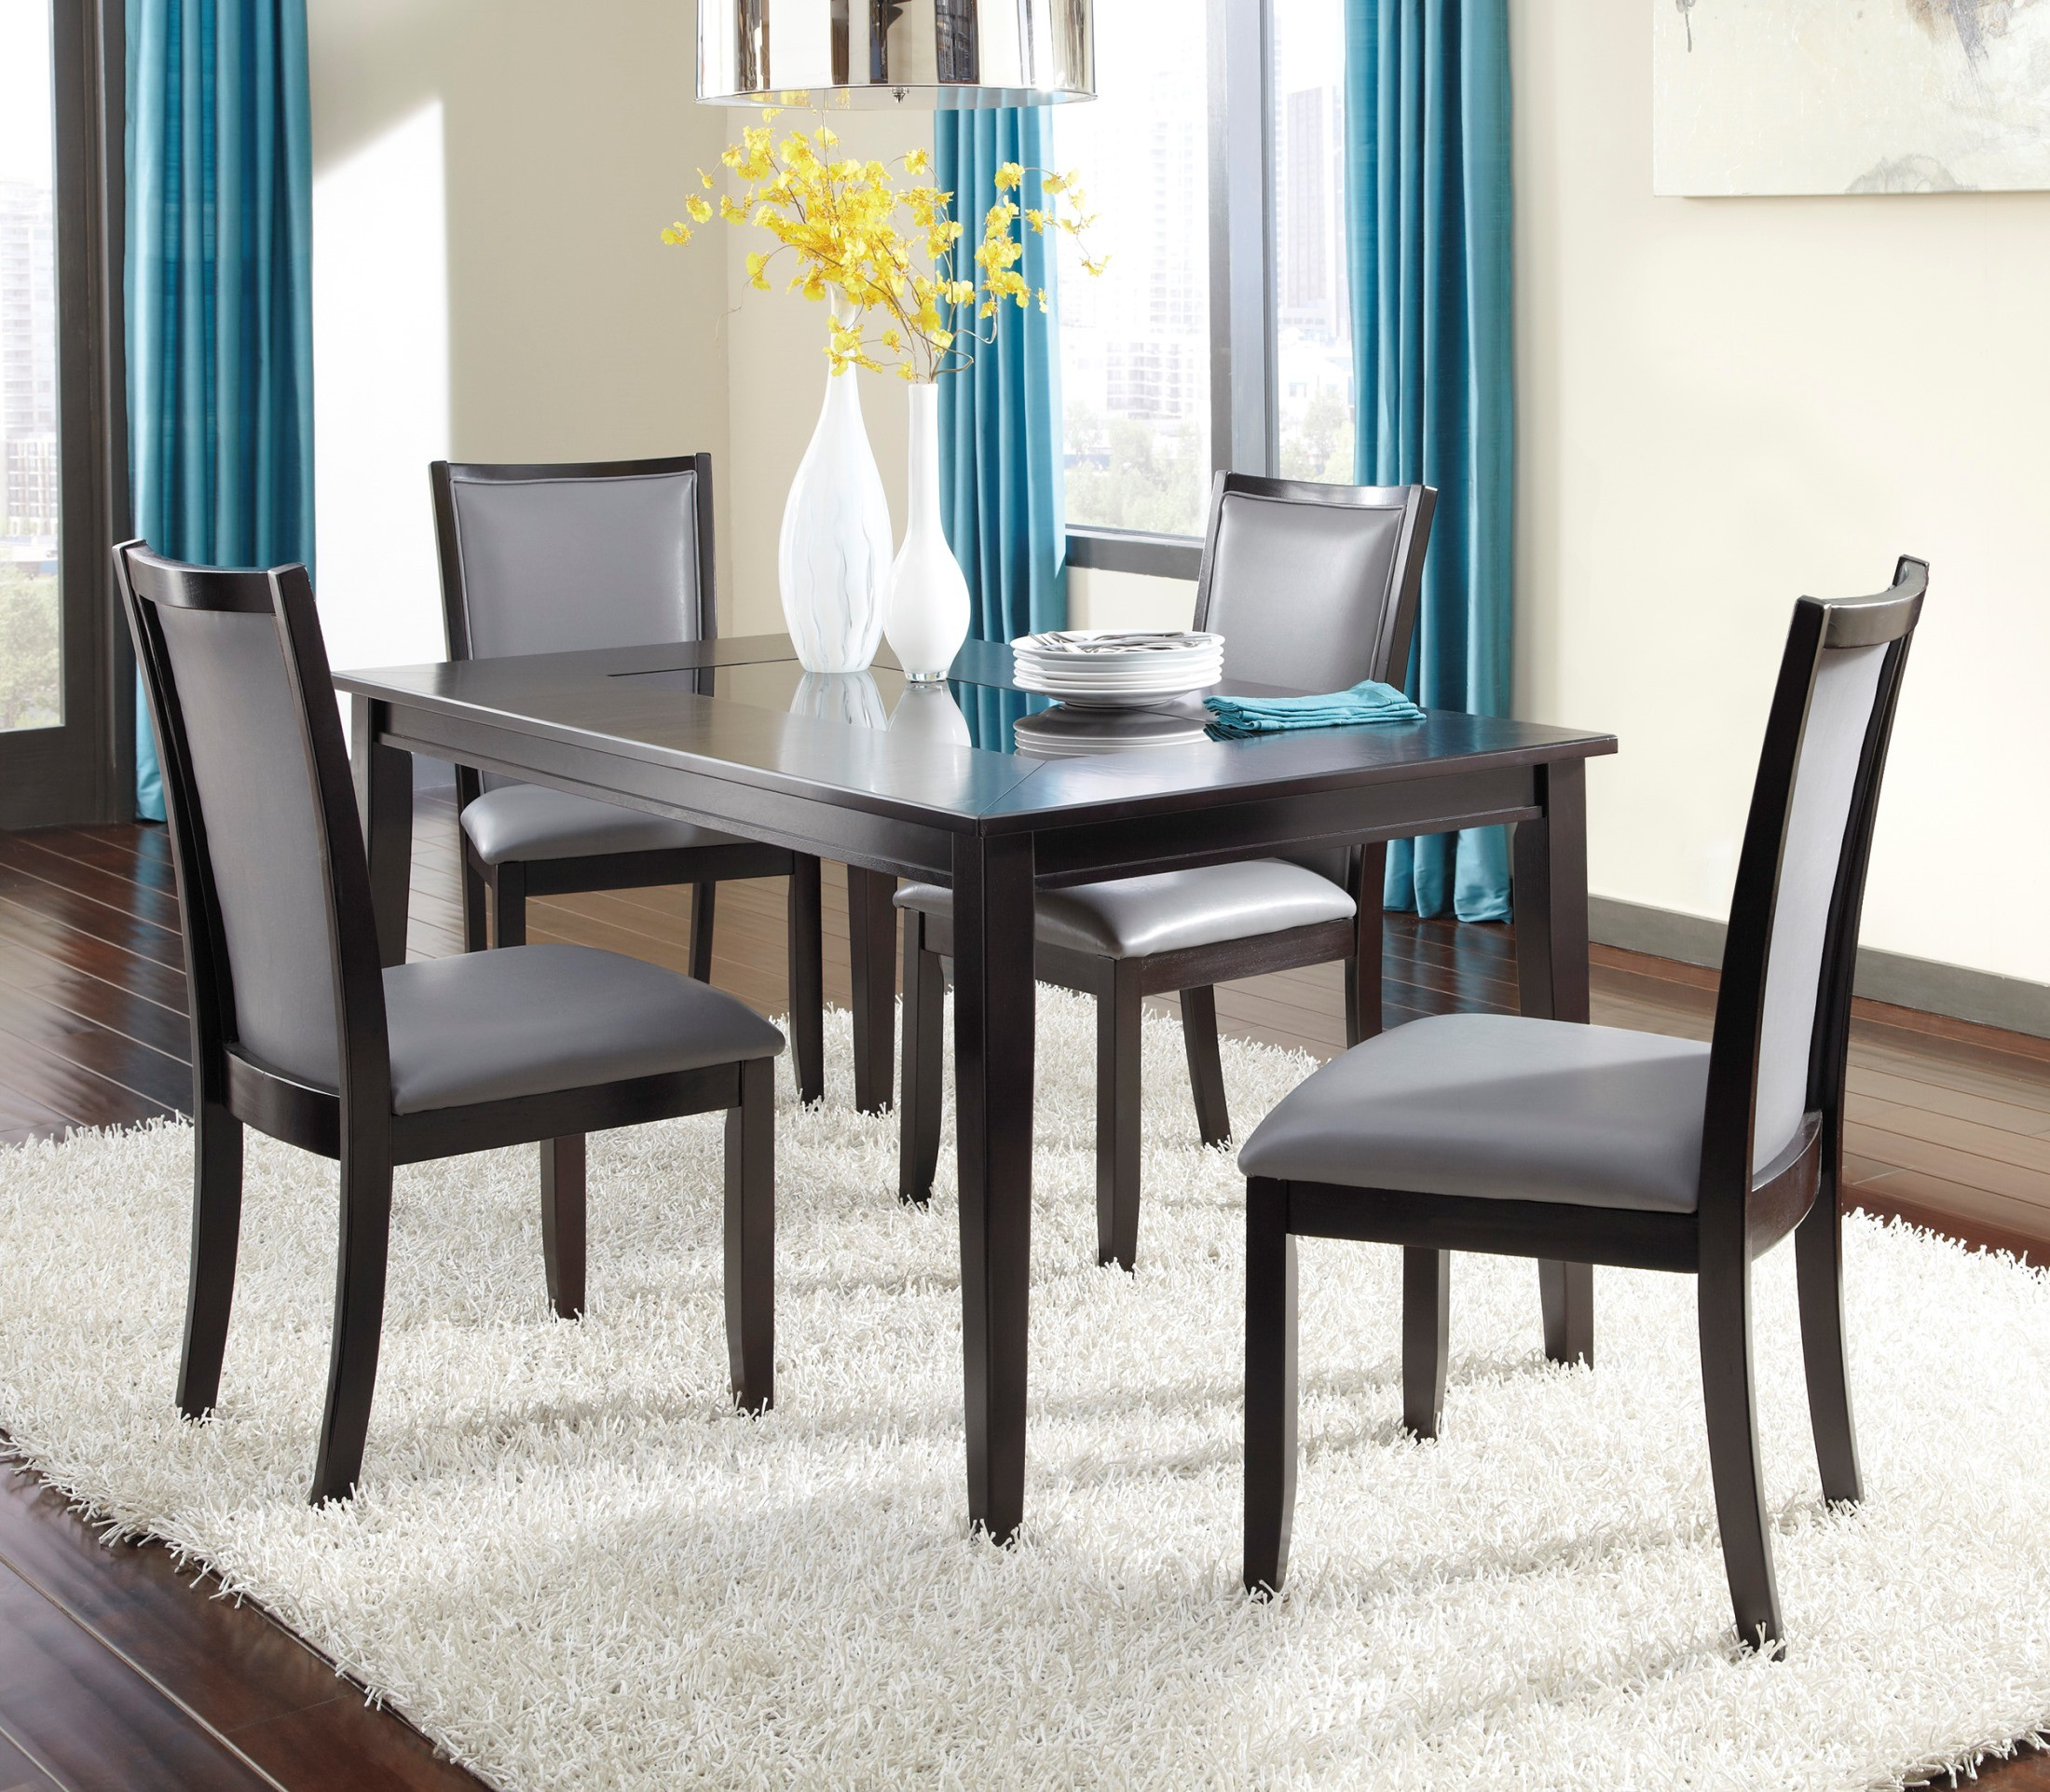 Dazzelton Dining Room Table: Trishelle Rectangular Dining Room Set From Ashley (D550-25